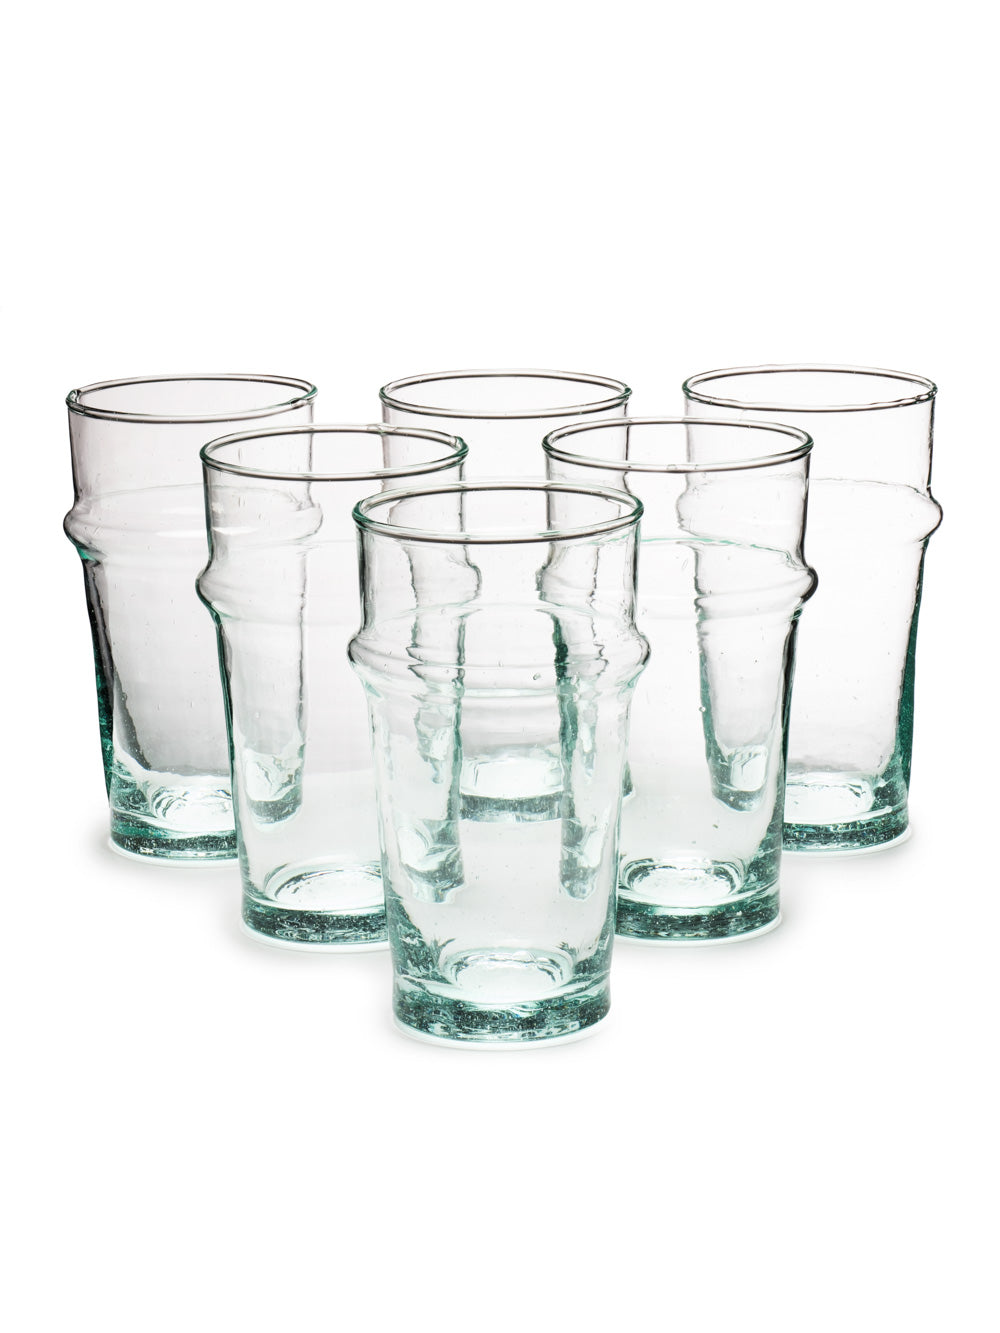 Large Handblown Tea Glass (Set of 6)